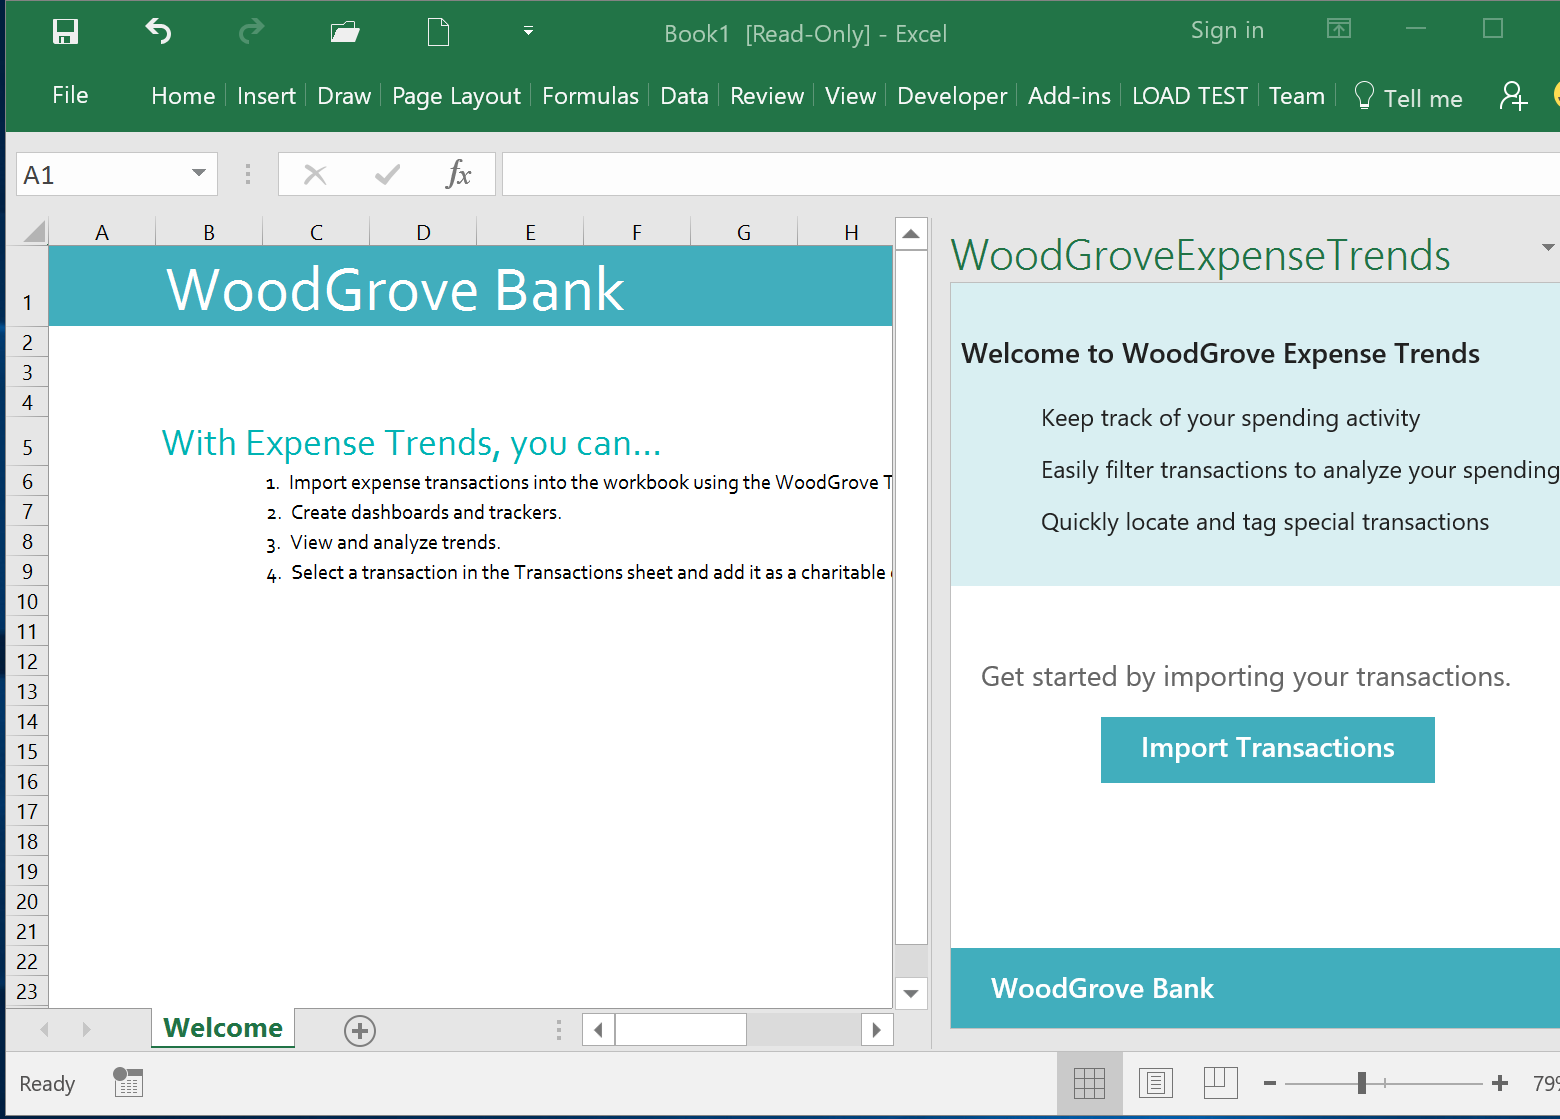 WoodGrove Bank Expense Trends Add-in - Initial taskpane